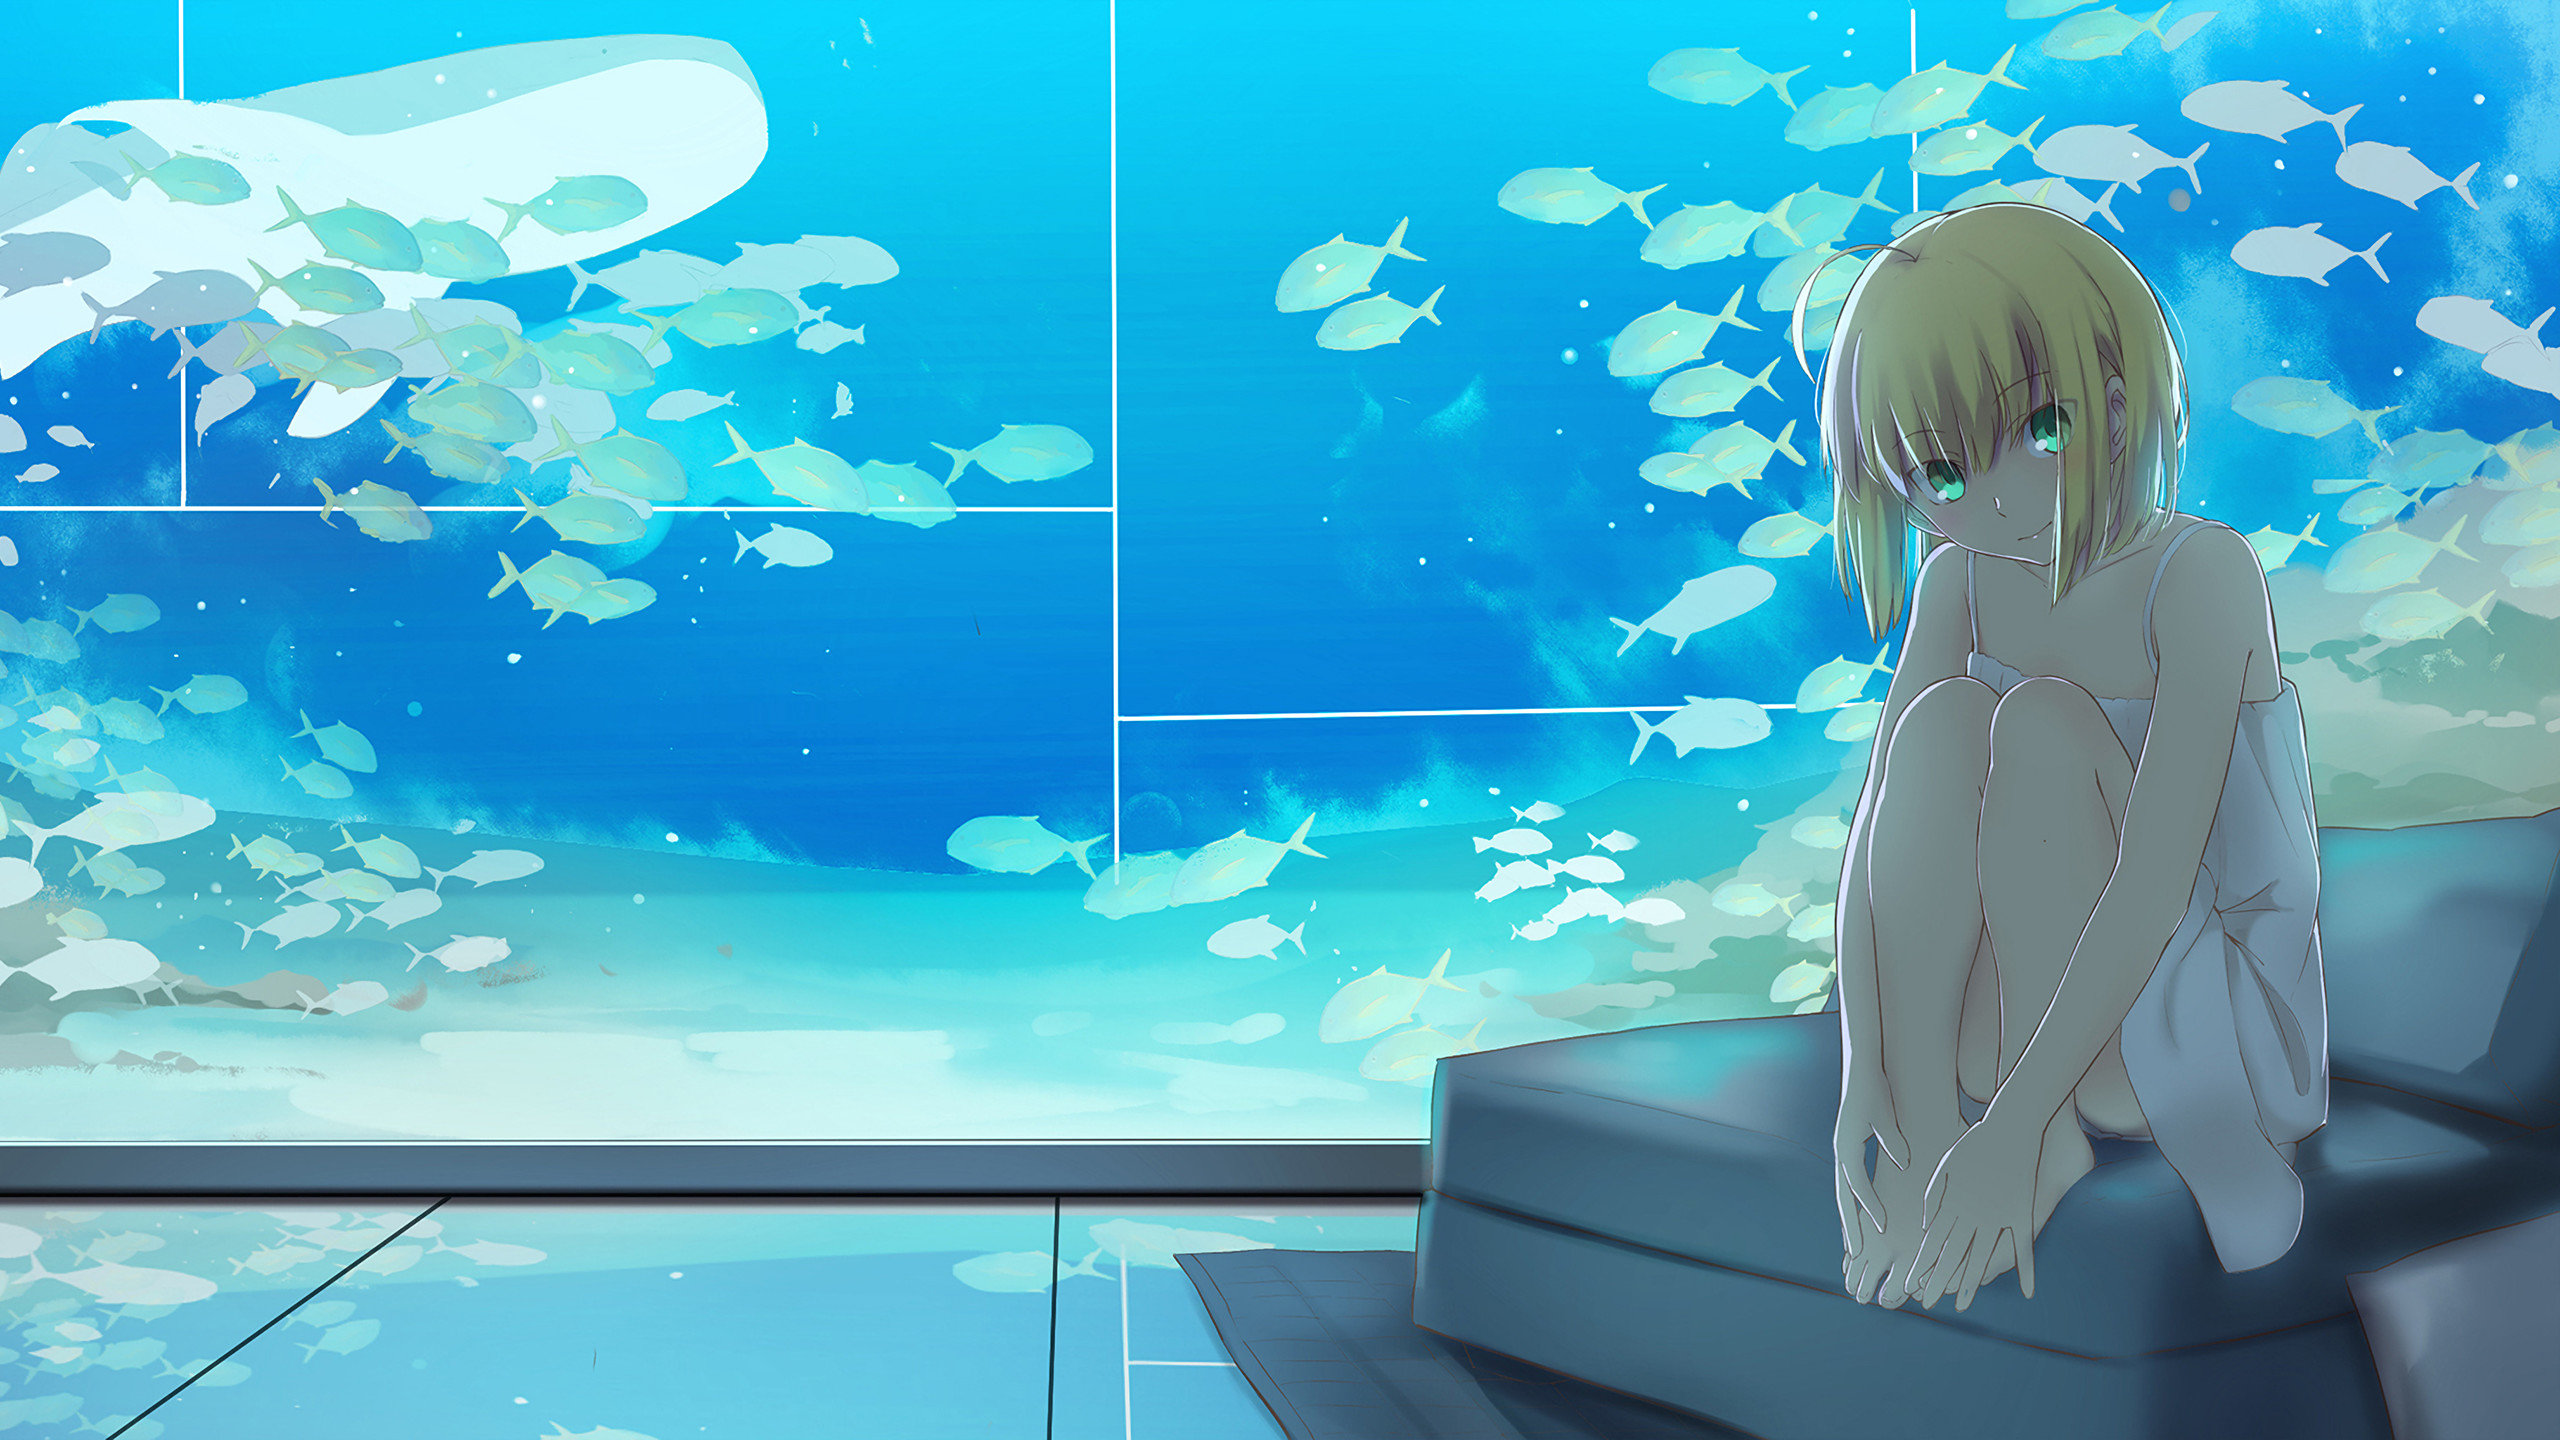 Free download Saber (Fate Series) wallpaper ID:468901 hd 2560x1440 for desktop